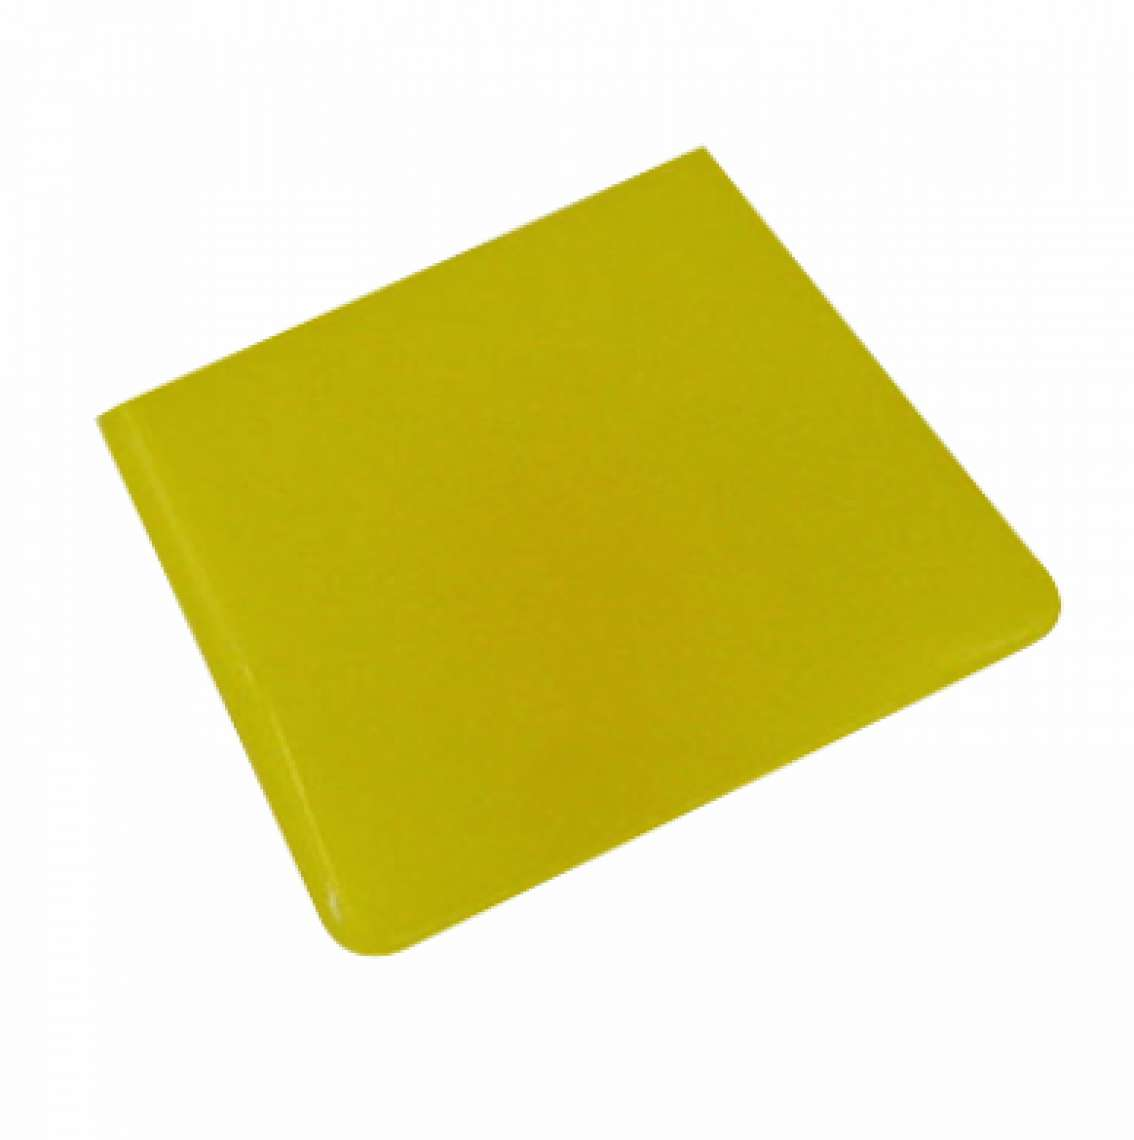 PRECISION SQUEEGEE